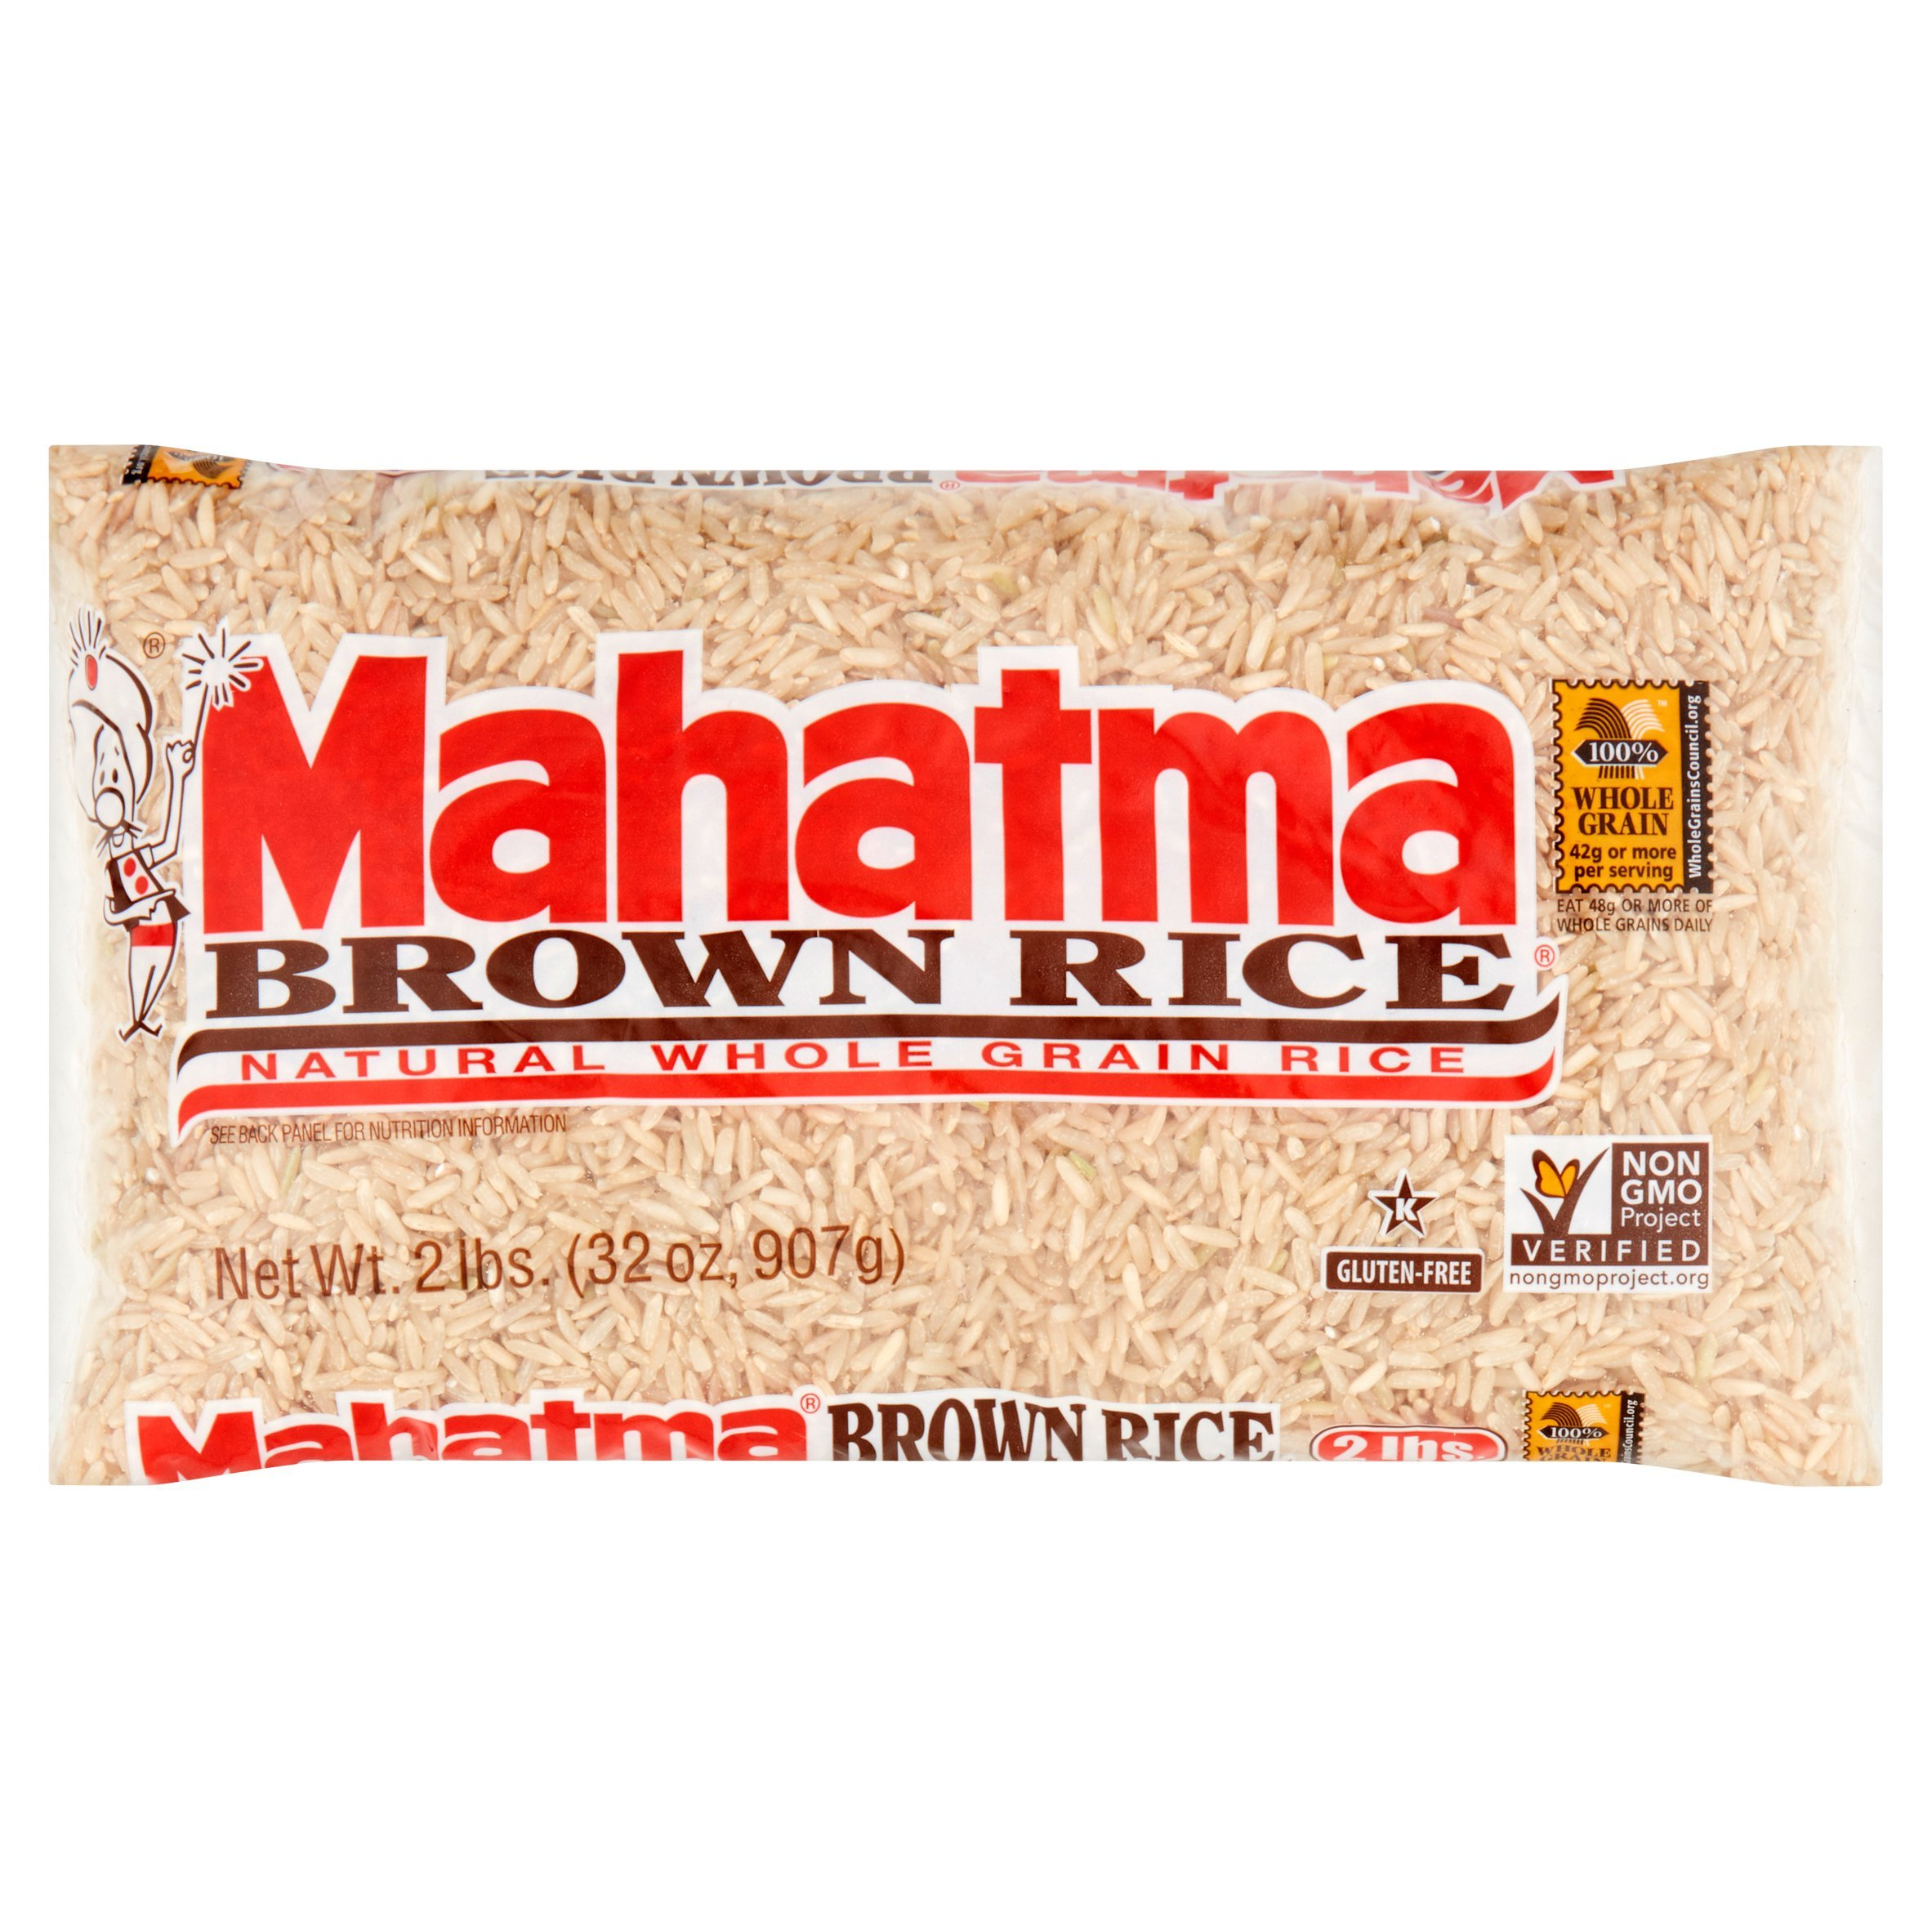 Mahatma Brown Rice, 32.0 OZ Natural Whole Grain, Gluten Free, Non GMO